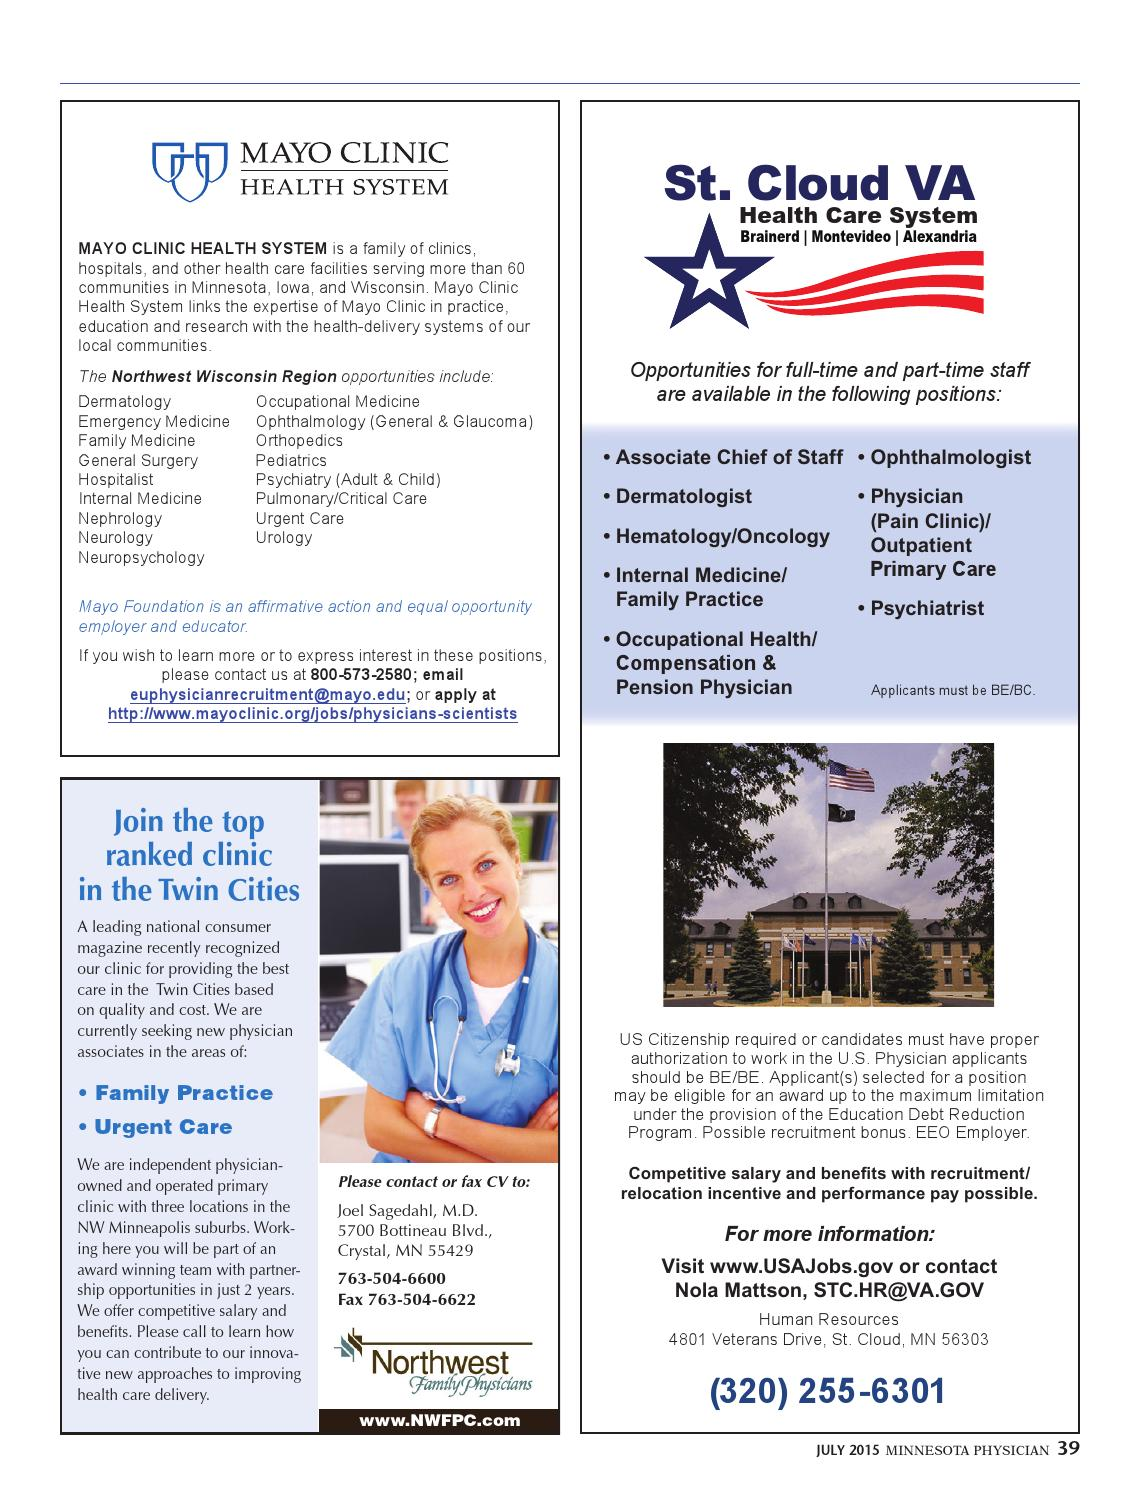 Minnesota Physician July 2015 by Minnesota Physician